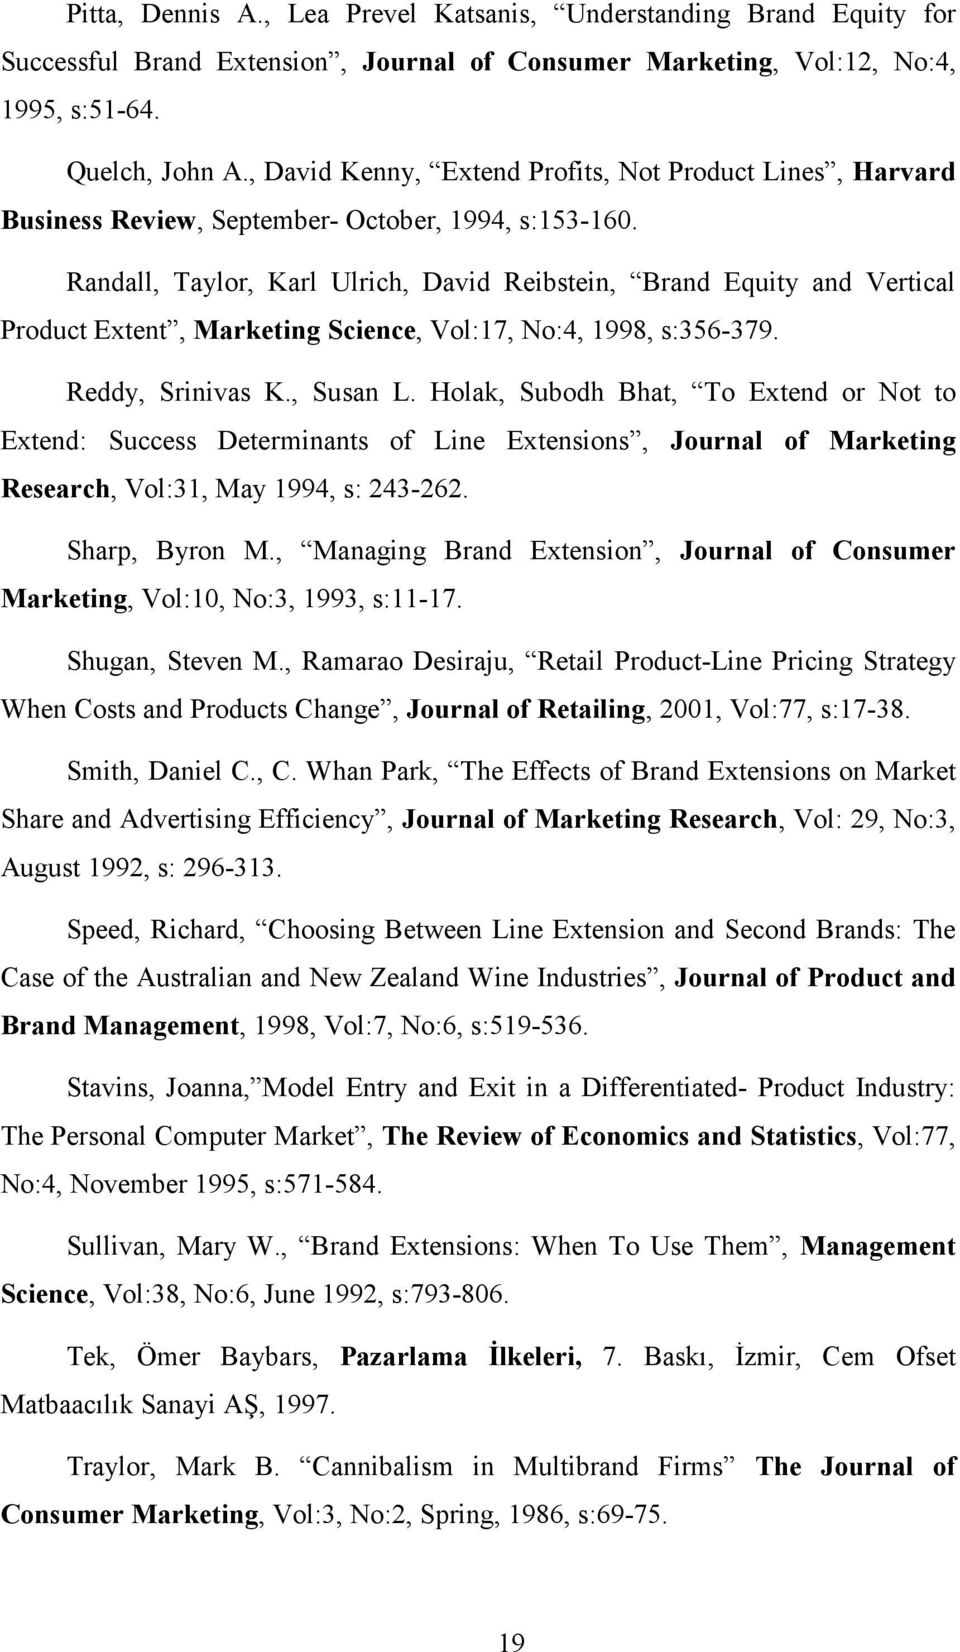 Randall, Taylor, Karl Ulrich, David Reibstein, Brand Equity and Vertical Product Extent, Marketing Science, Vol:17, No:4, 1998, s:356-379. Reddy, Srinivas K., Susan L.